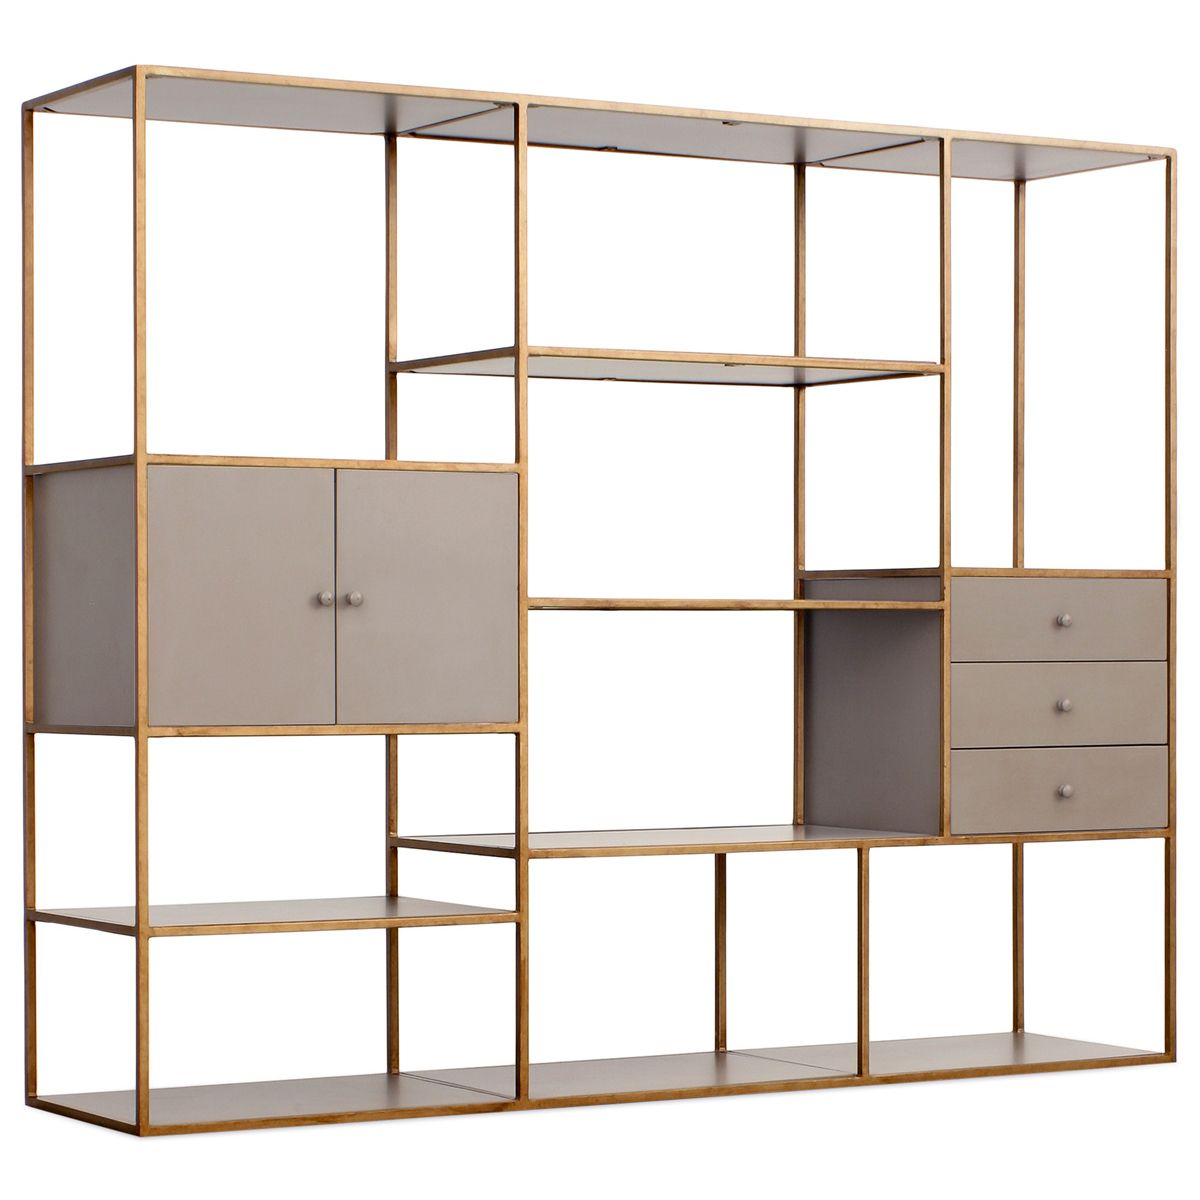 these metal and glass bookshelves are fabulous redford house emerson bookshelf with 3 drawers. Black Bedroom Furniture Sets. Home Design Ideas